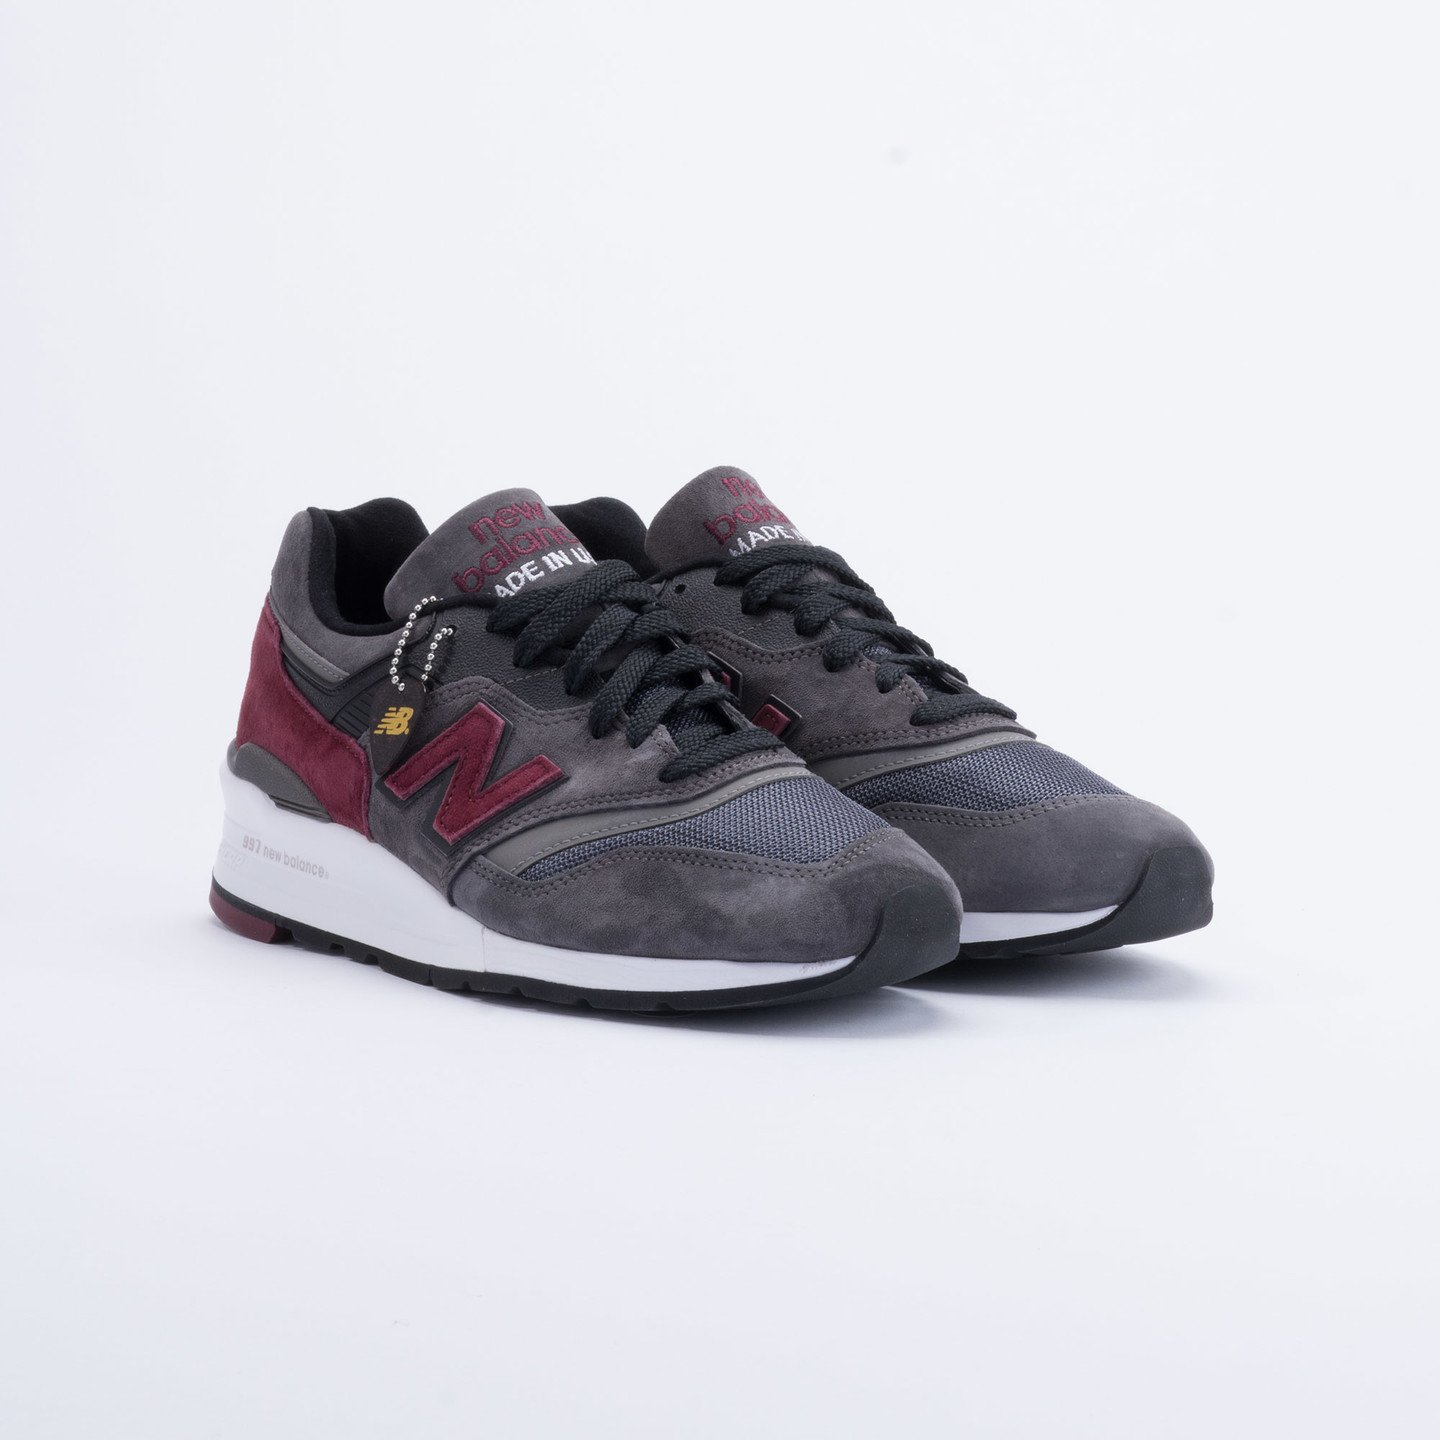 New Balance M997 Made in USA Charcoal/Burgundy M997CCF-46.5